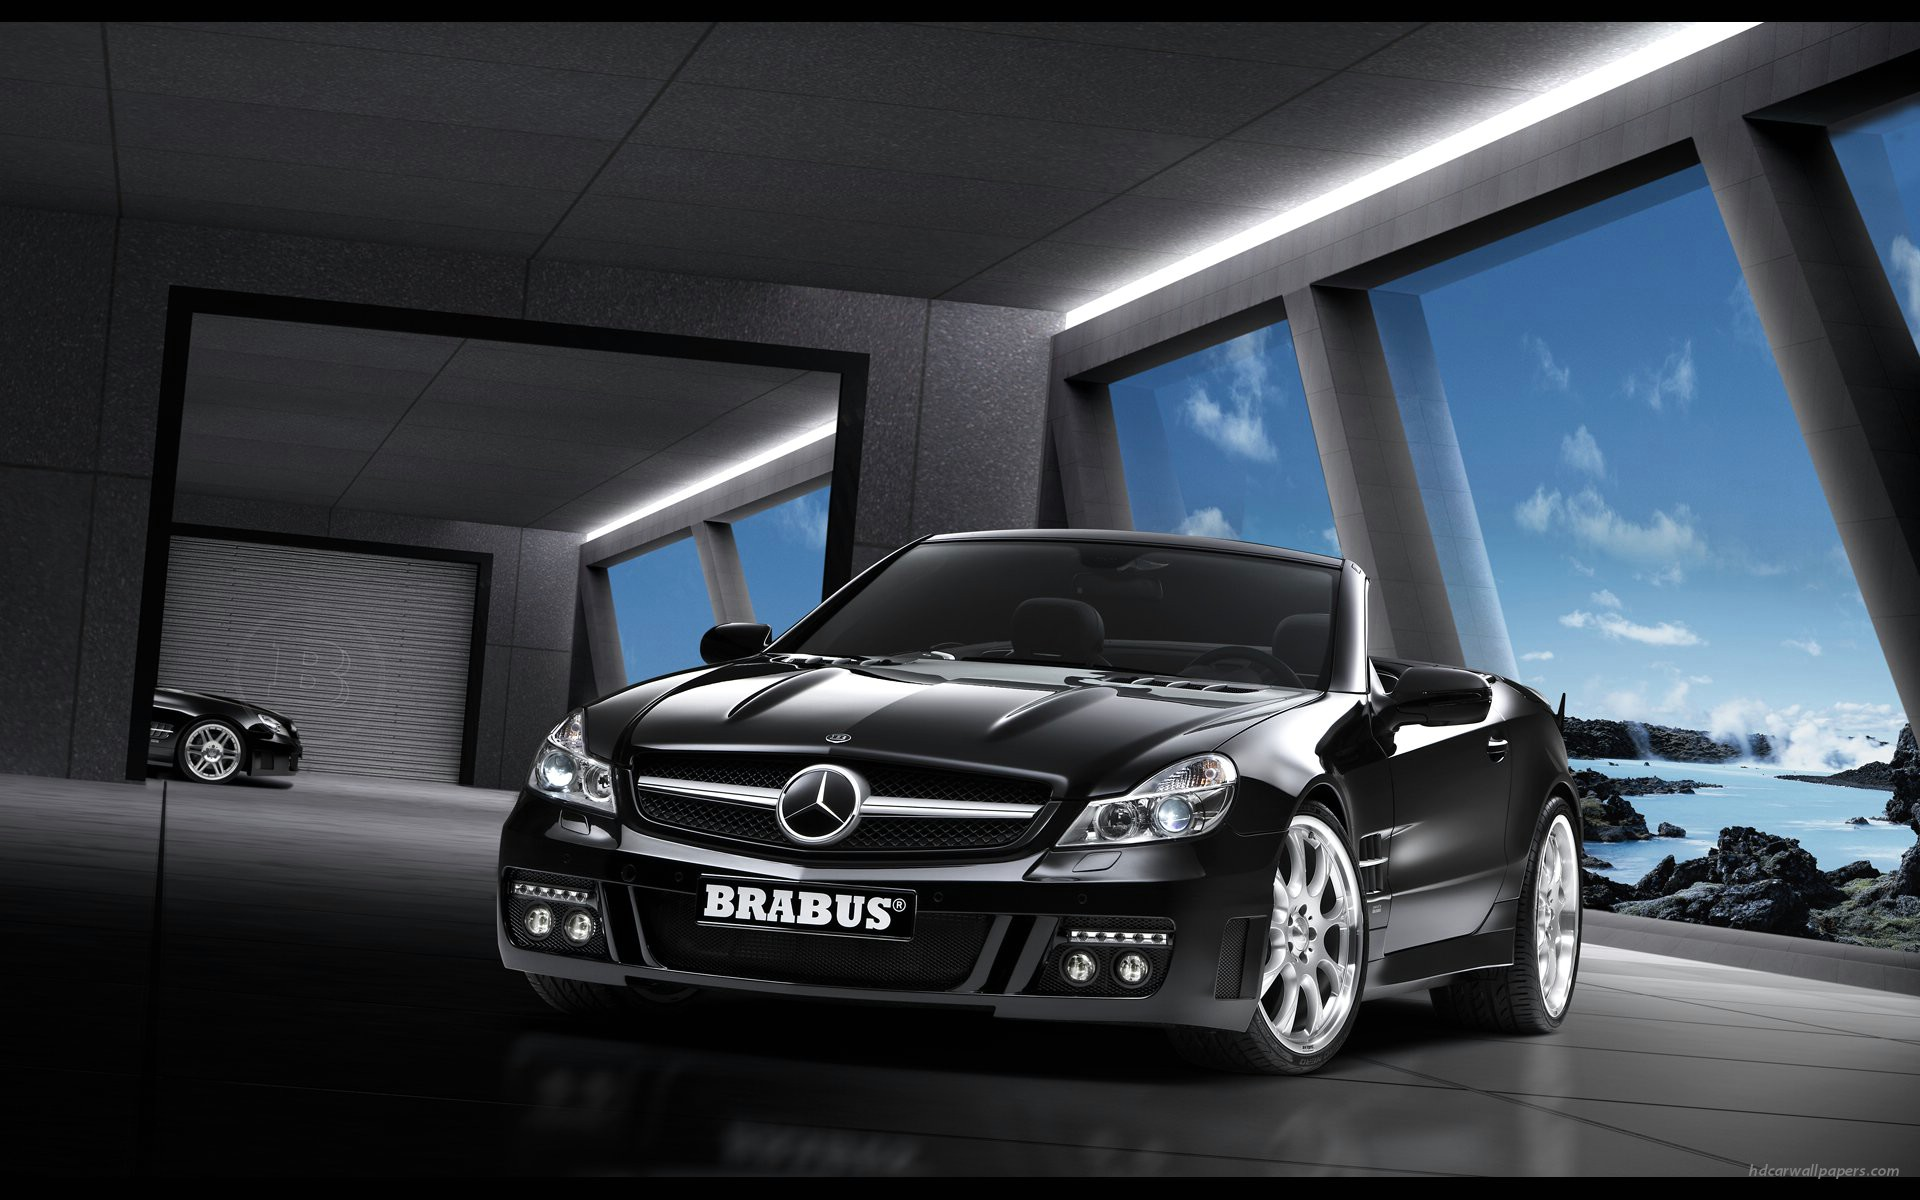 download brabus mercedes sl class cars wallpapers mobile versiondownload brabus mercedes sl class cars wallpapers